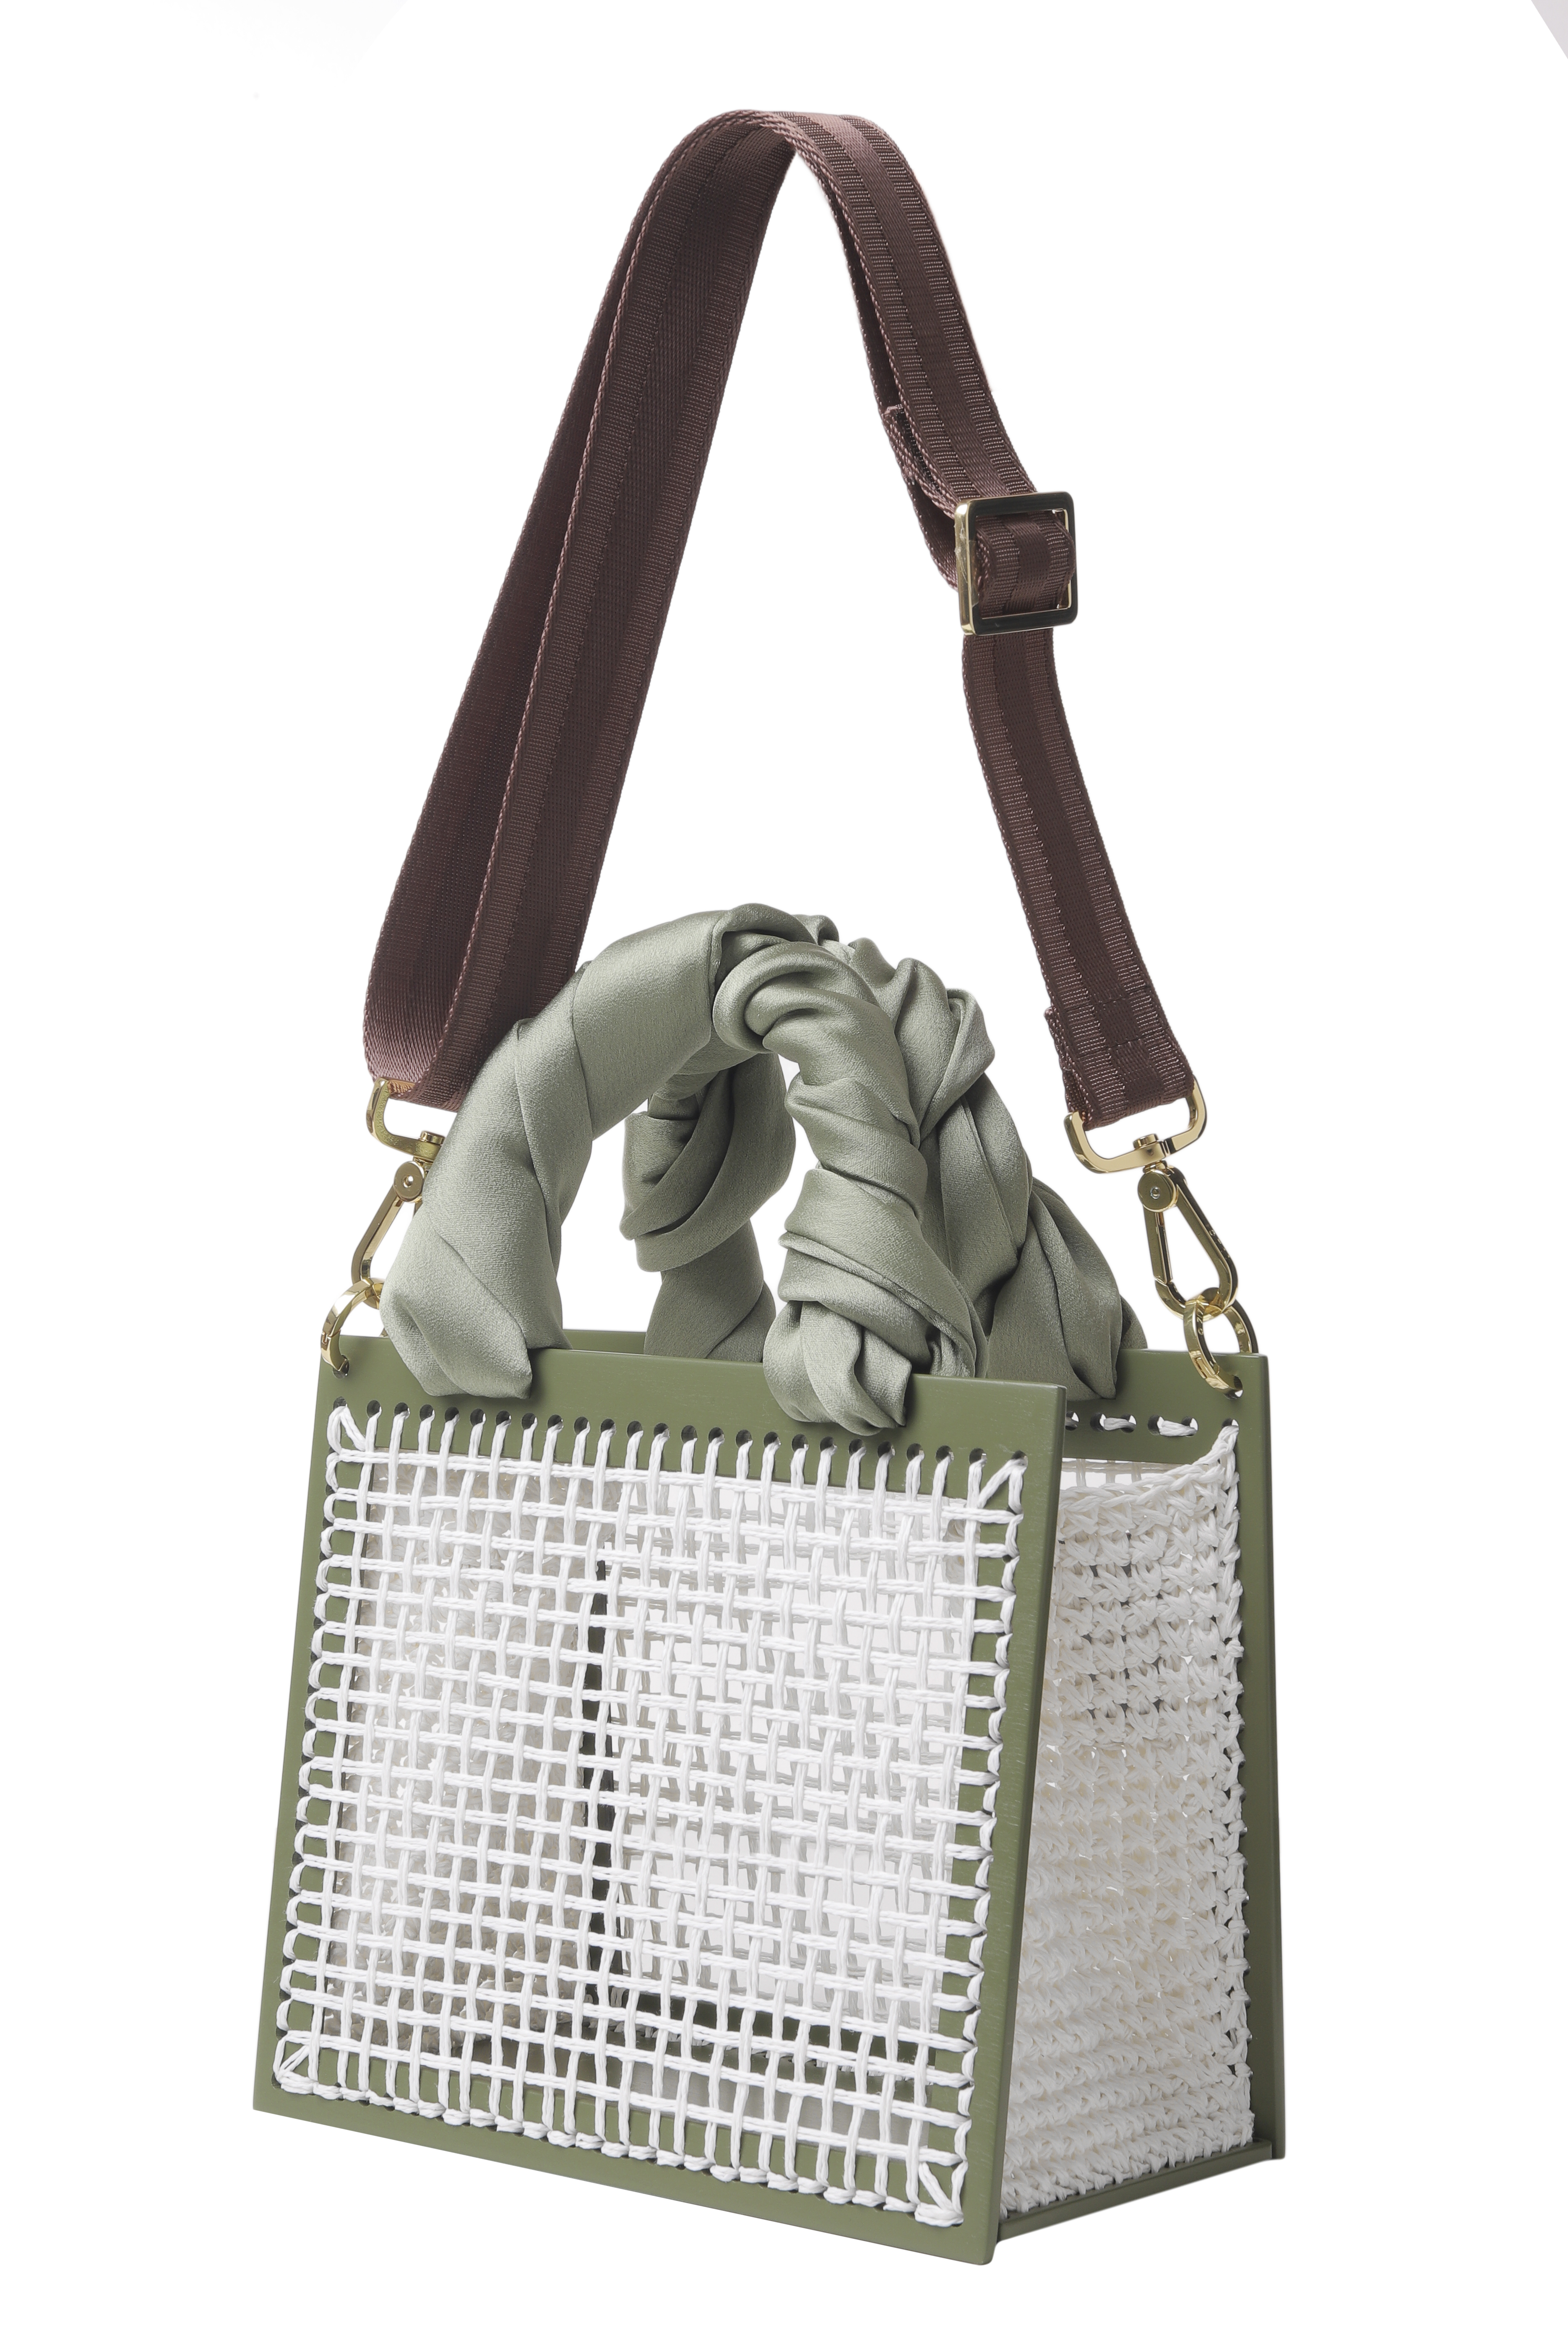 St. Barts Bucket Bag by 0711 Tbilisi on curated-crowd.com